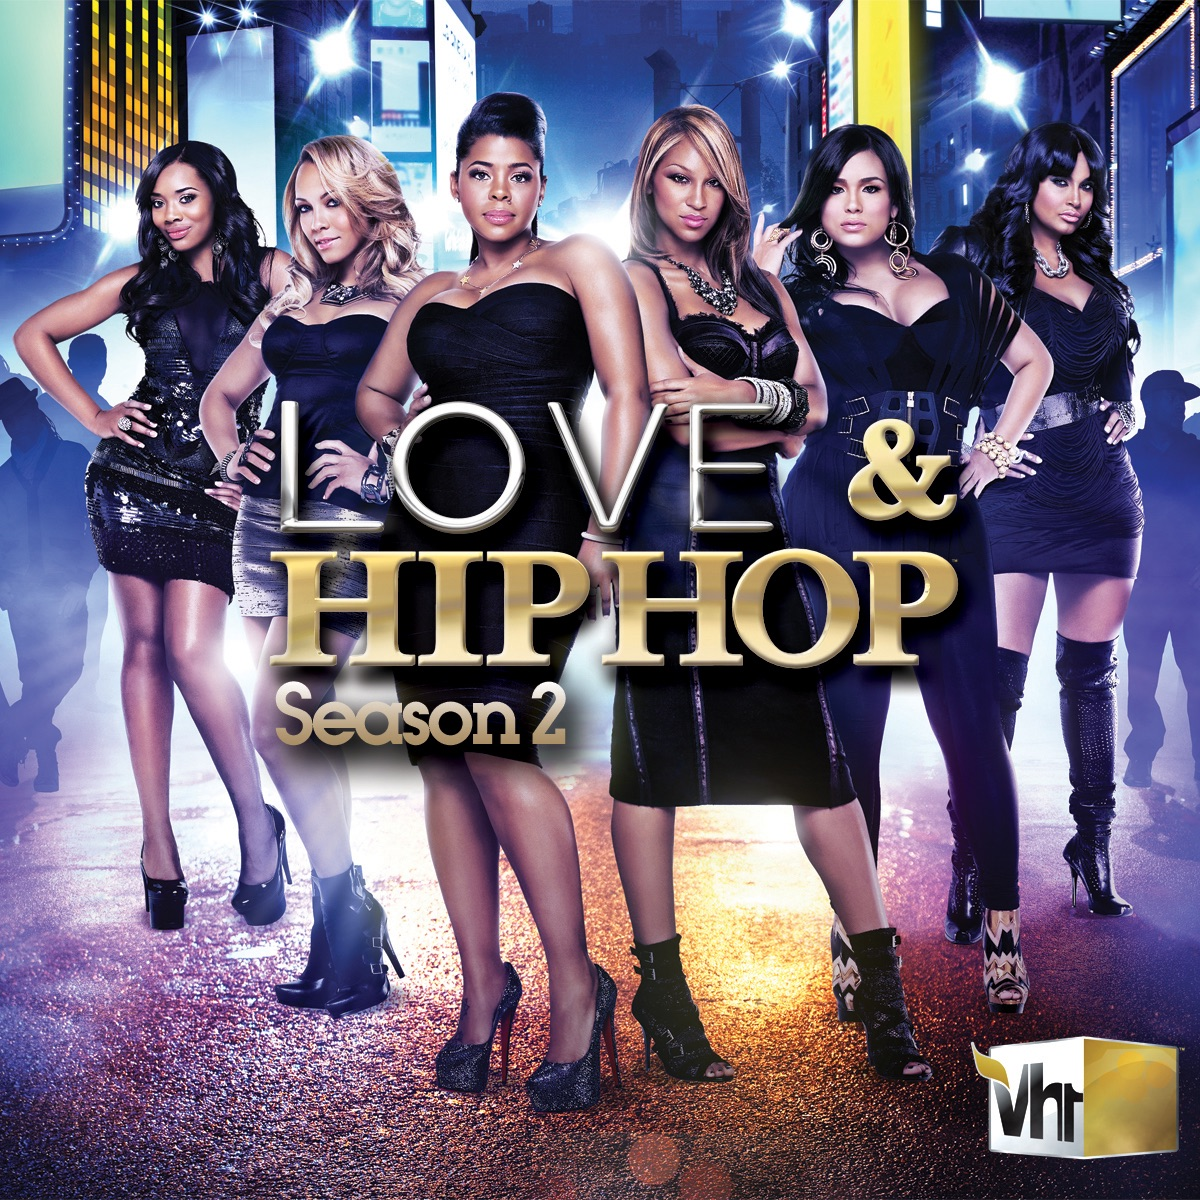 Love an hip hop season 3 episode 8 - Hollywood horror mp4 movies in